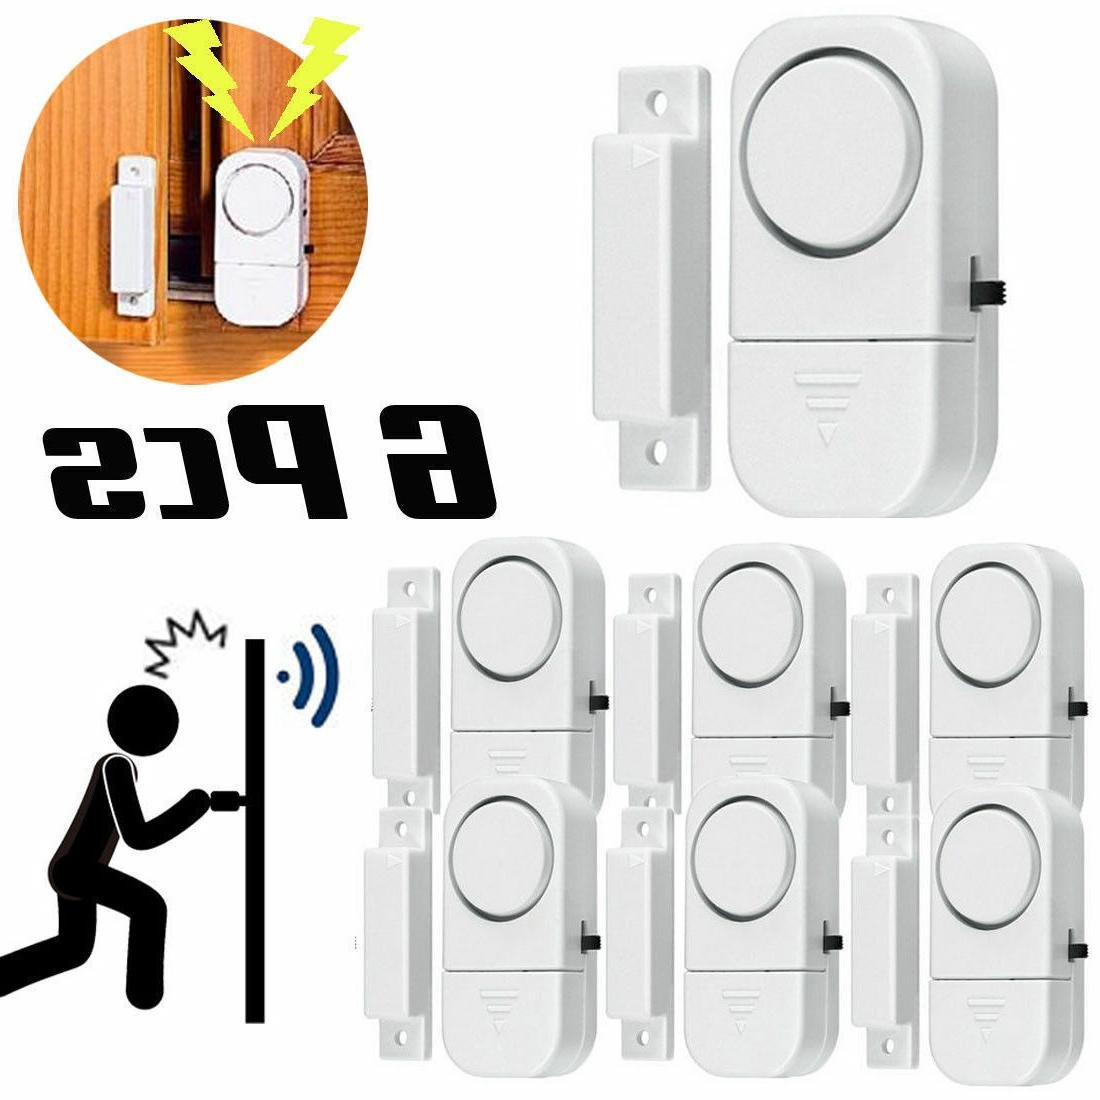 2-10 PC WIRELESS DOOR AND WINDOW BATTERY SYSTEM SWITCH